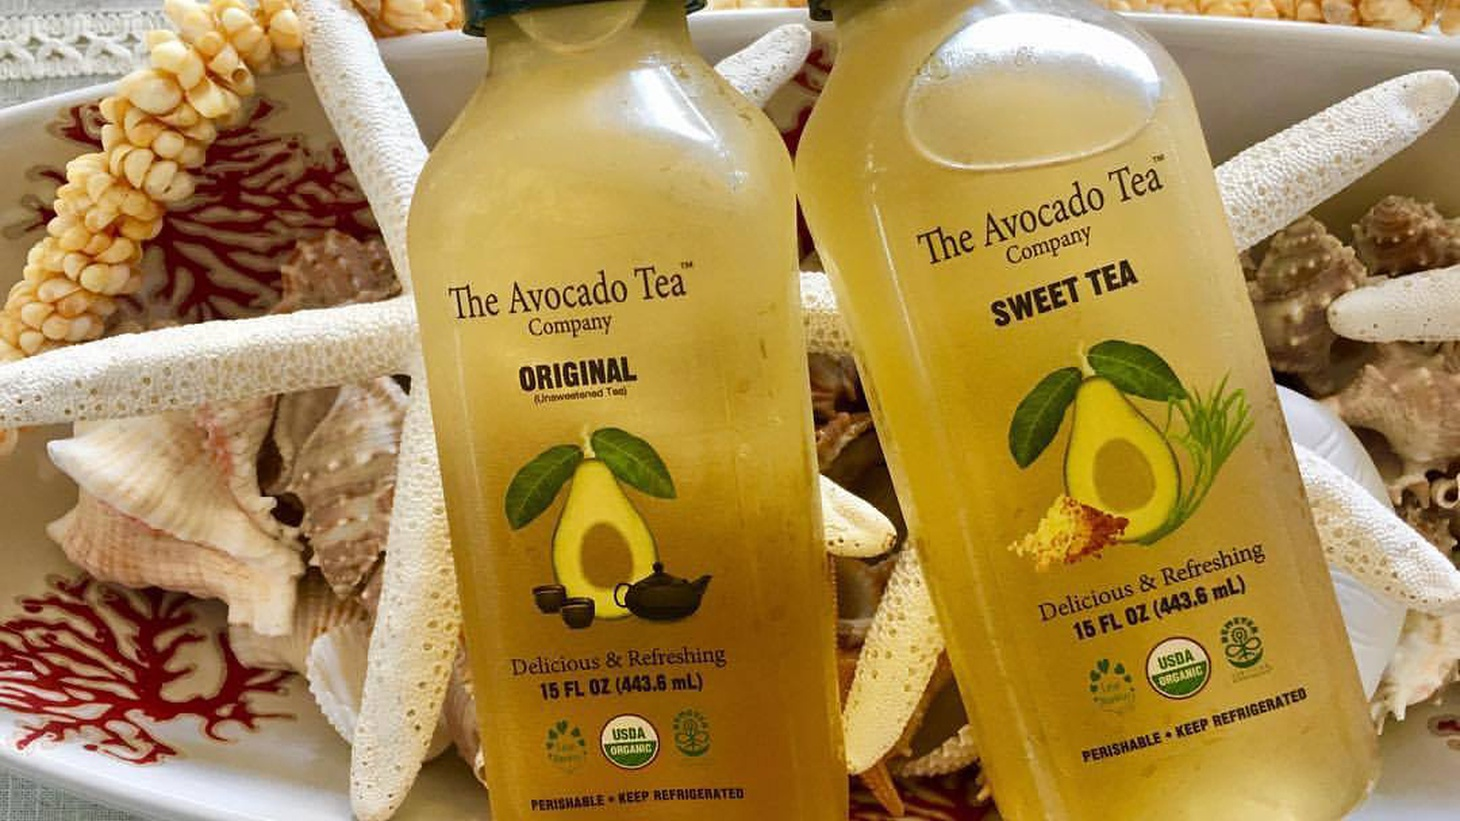 Boozy beverages often grab the most attention. But, from avocado tea to caffeine water, three new drinks created in Santa Barbara offer an alcohol-free alternative.